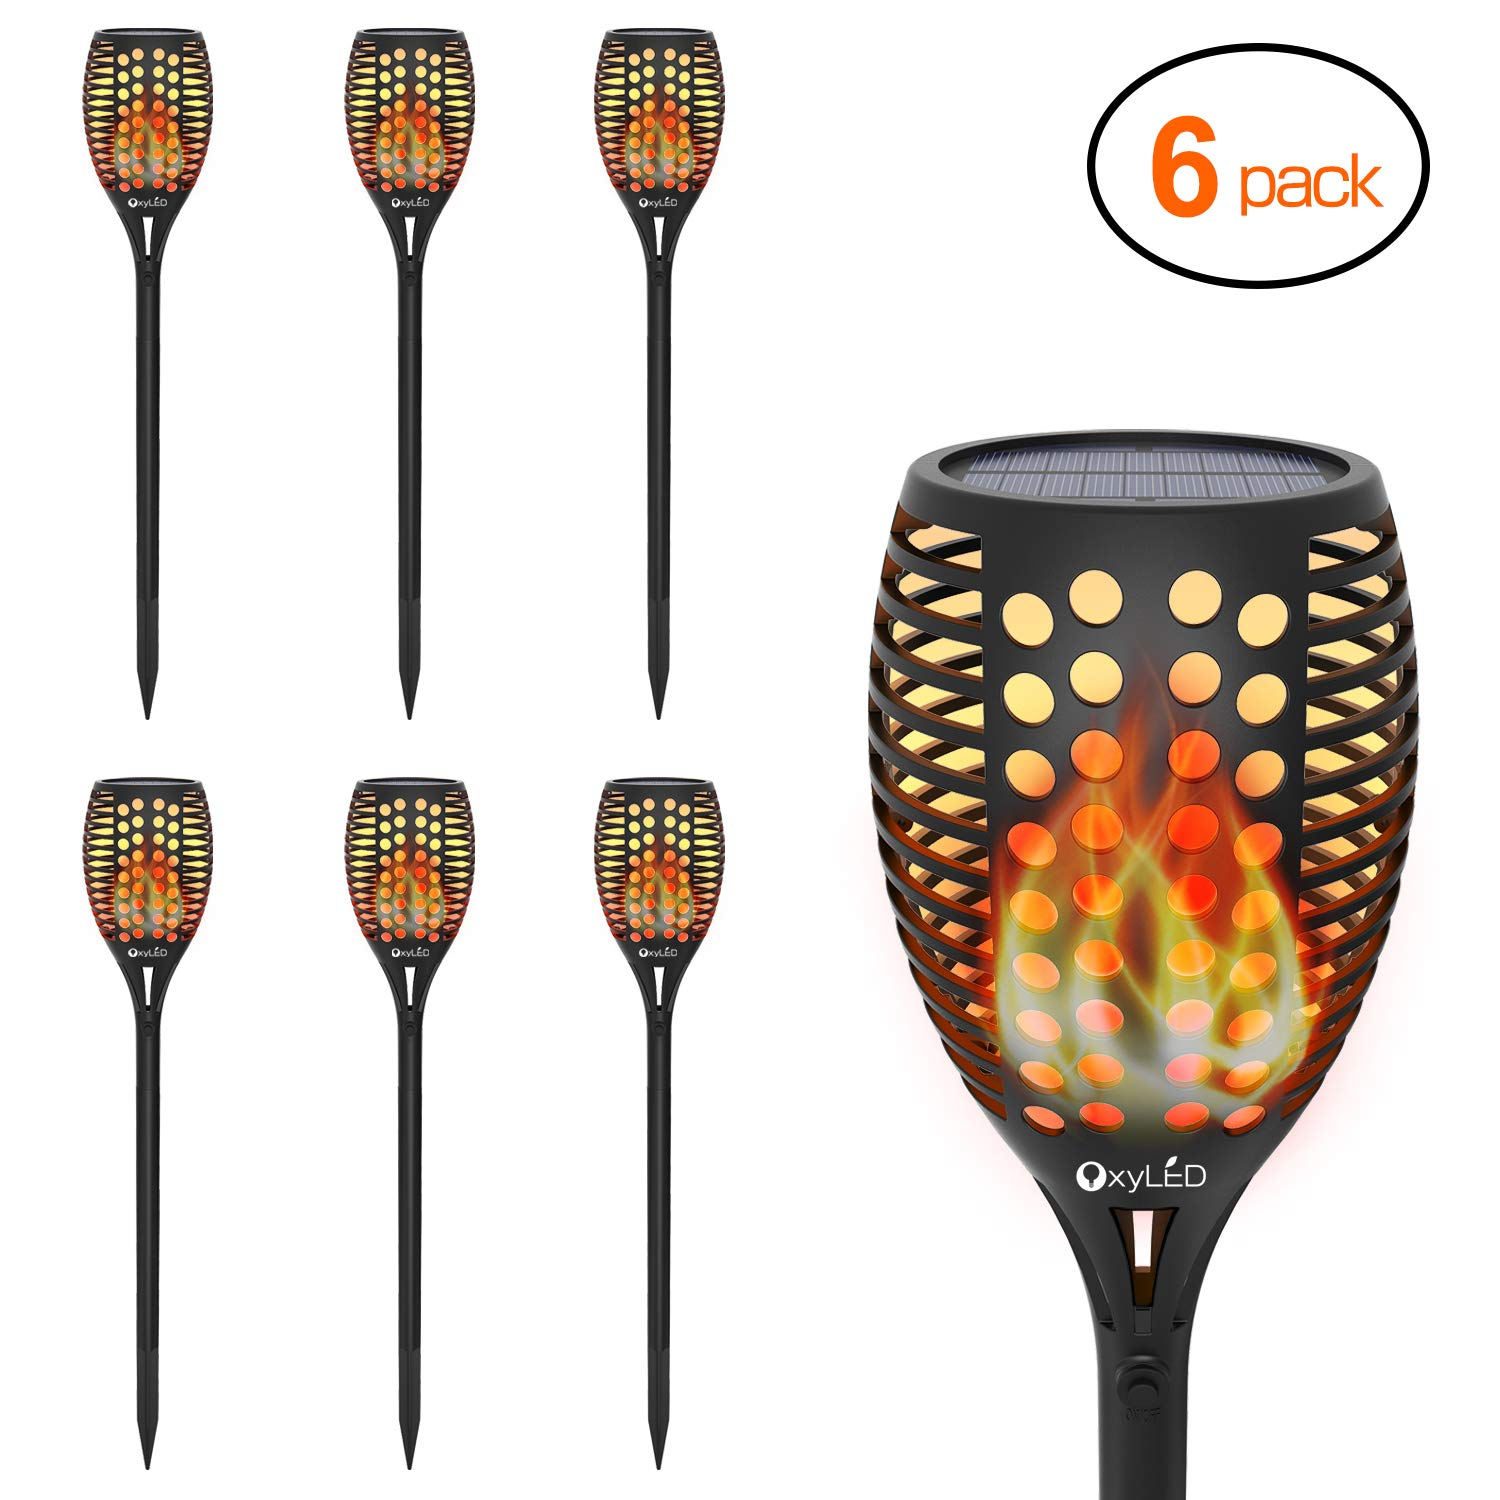 Solar Torch Lights, OxyLED Solar Garden Path Light with Realistic Dancing Flames, Waterproof Wireless Outdoor Garden Decorations Landscape Pathway Lighting With Auto On/Off Dusk to Dawn (6 Pack)